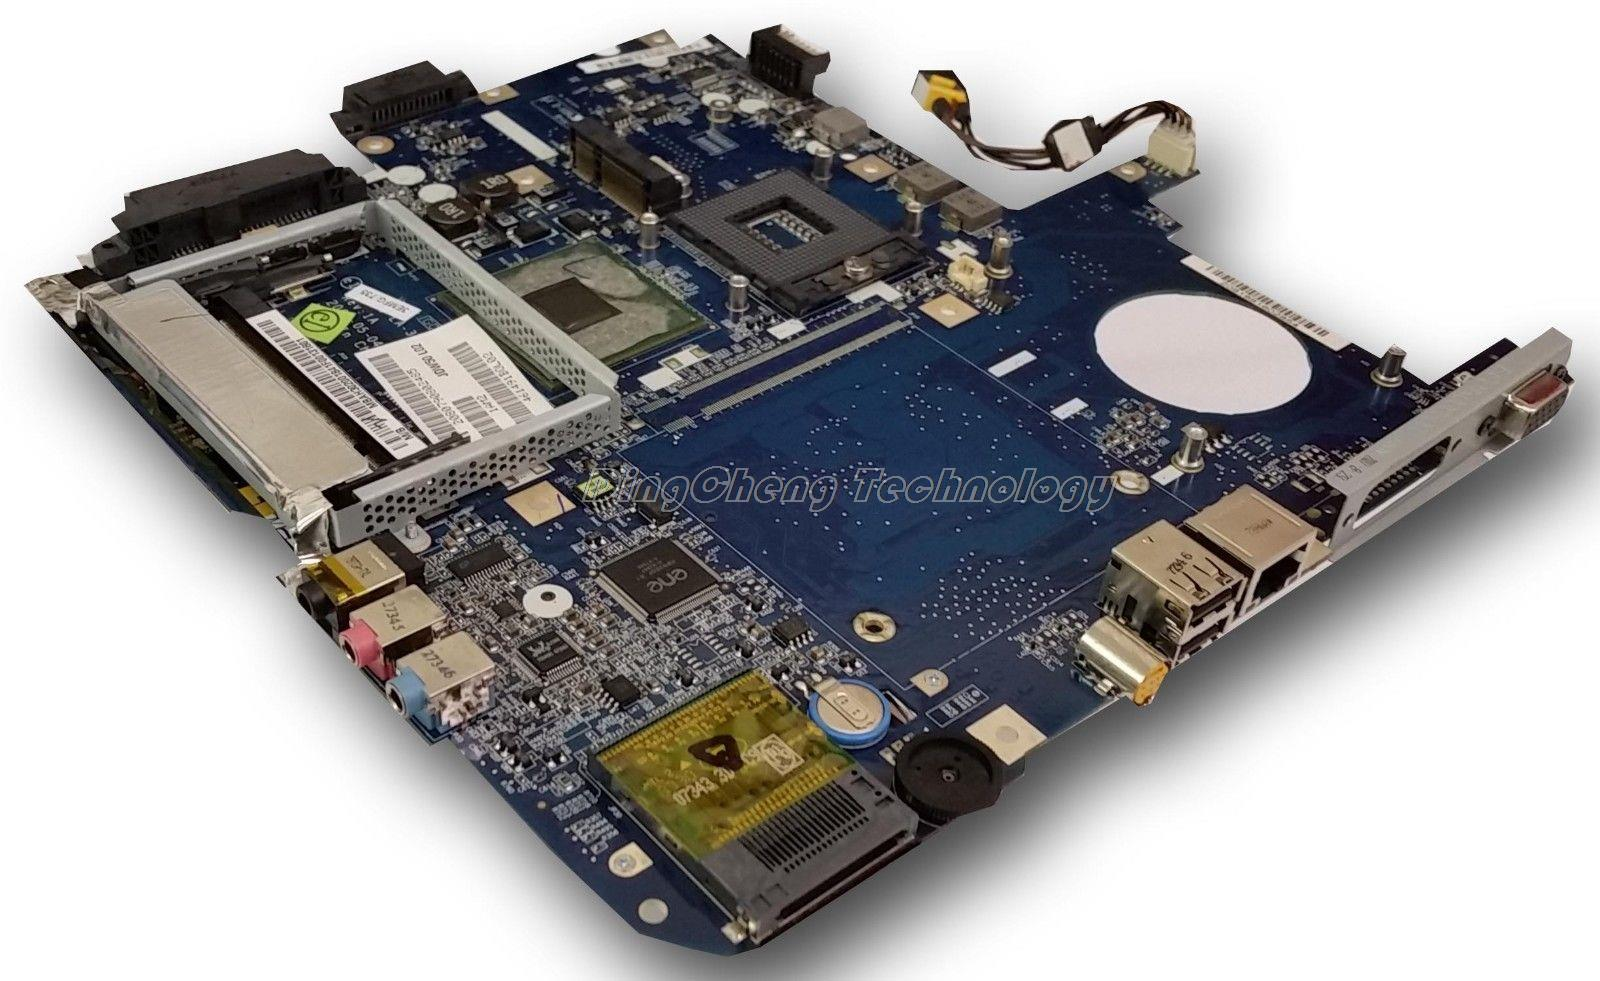 SHELI laptop Motherboard For Acer 5310 5710 JDW50 LA-3771P MBAH302001 MB.AH302.001 integrated graphics card fully tested kefu q5wv8 la 8331p motherboard for acer aspire v3 551g laptop motherboard original tested v3 551 motherboard